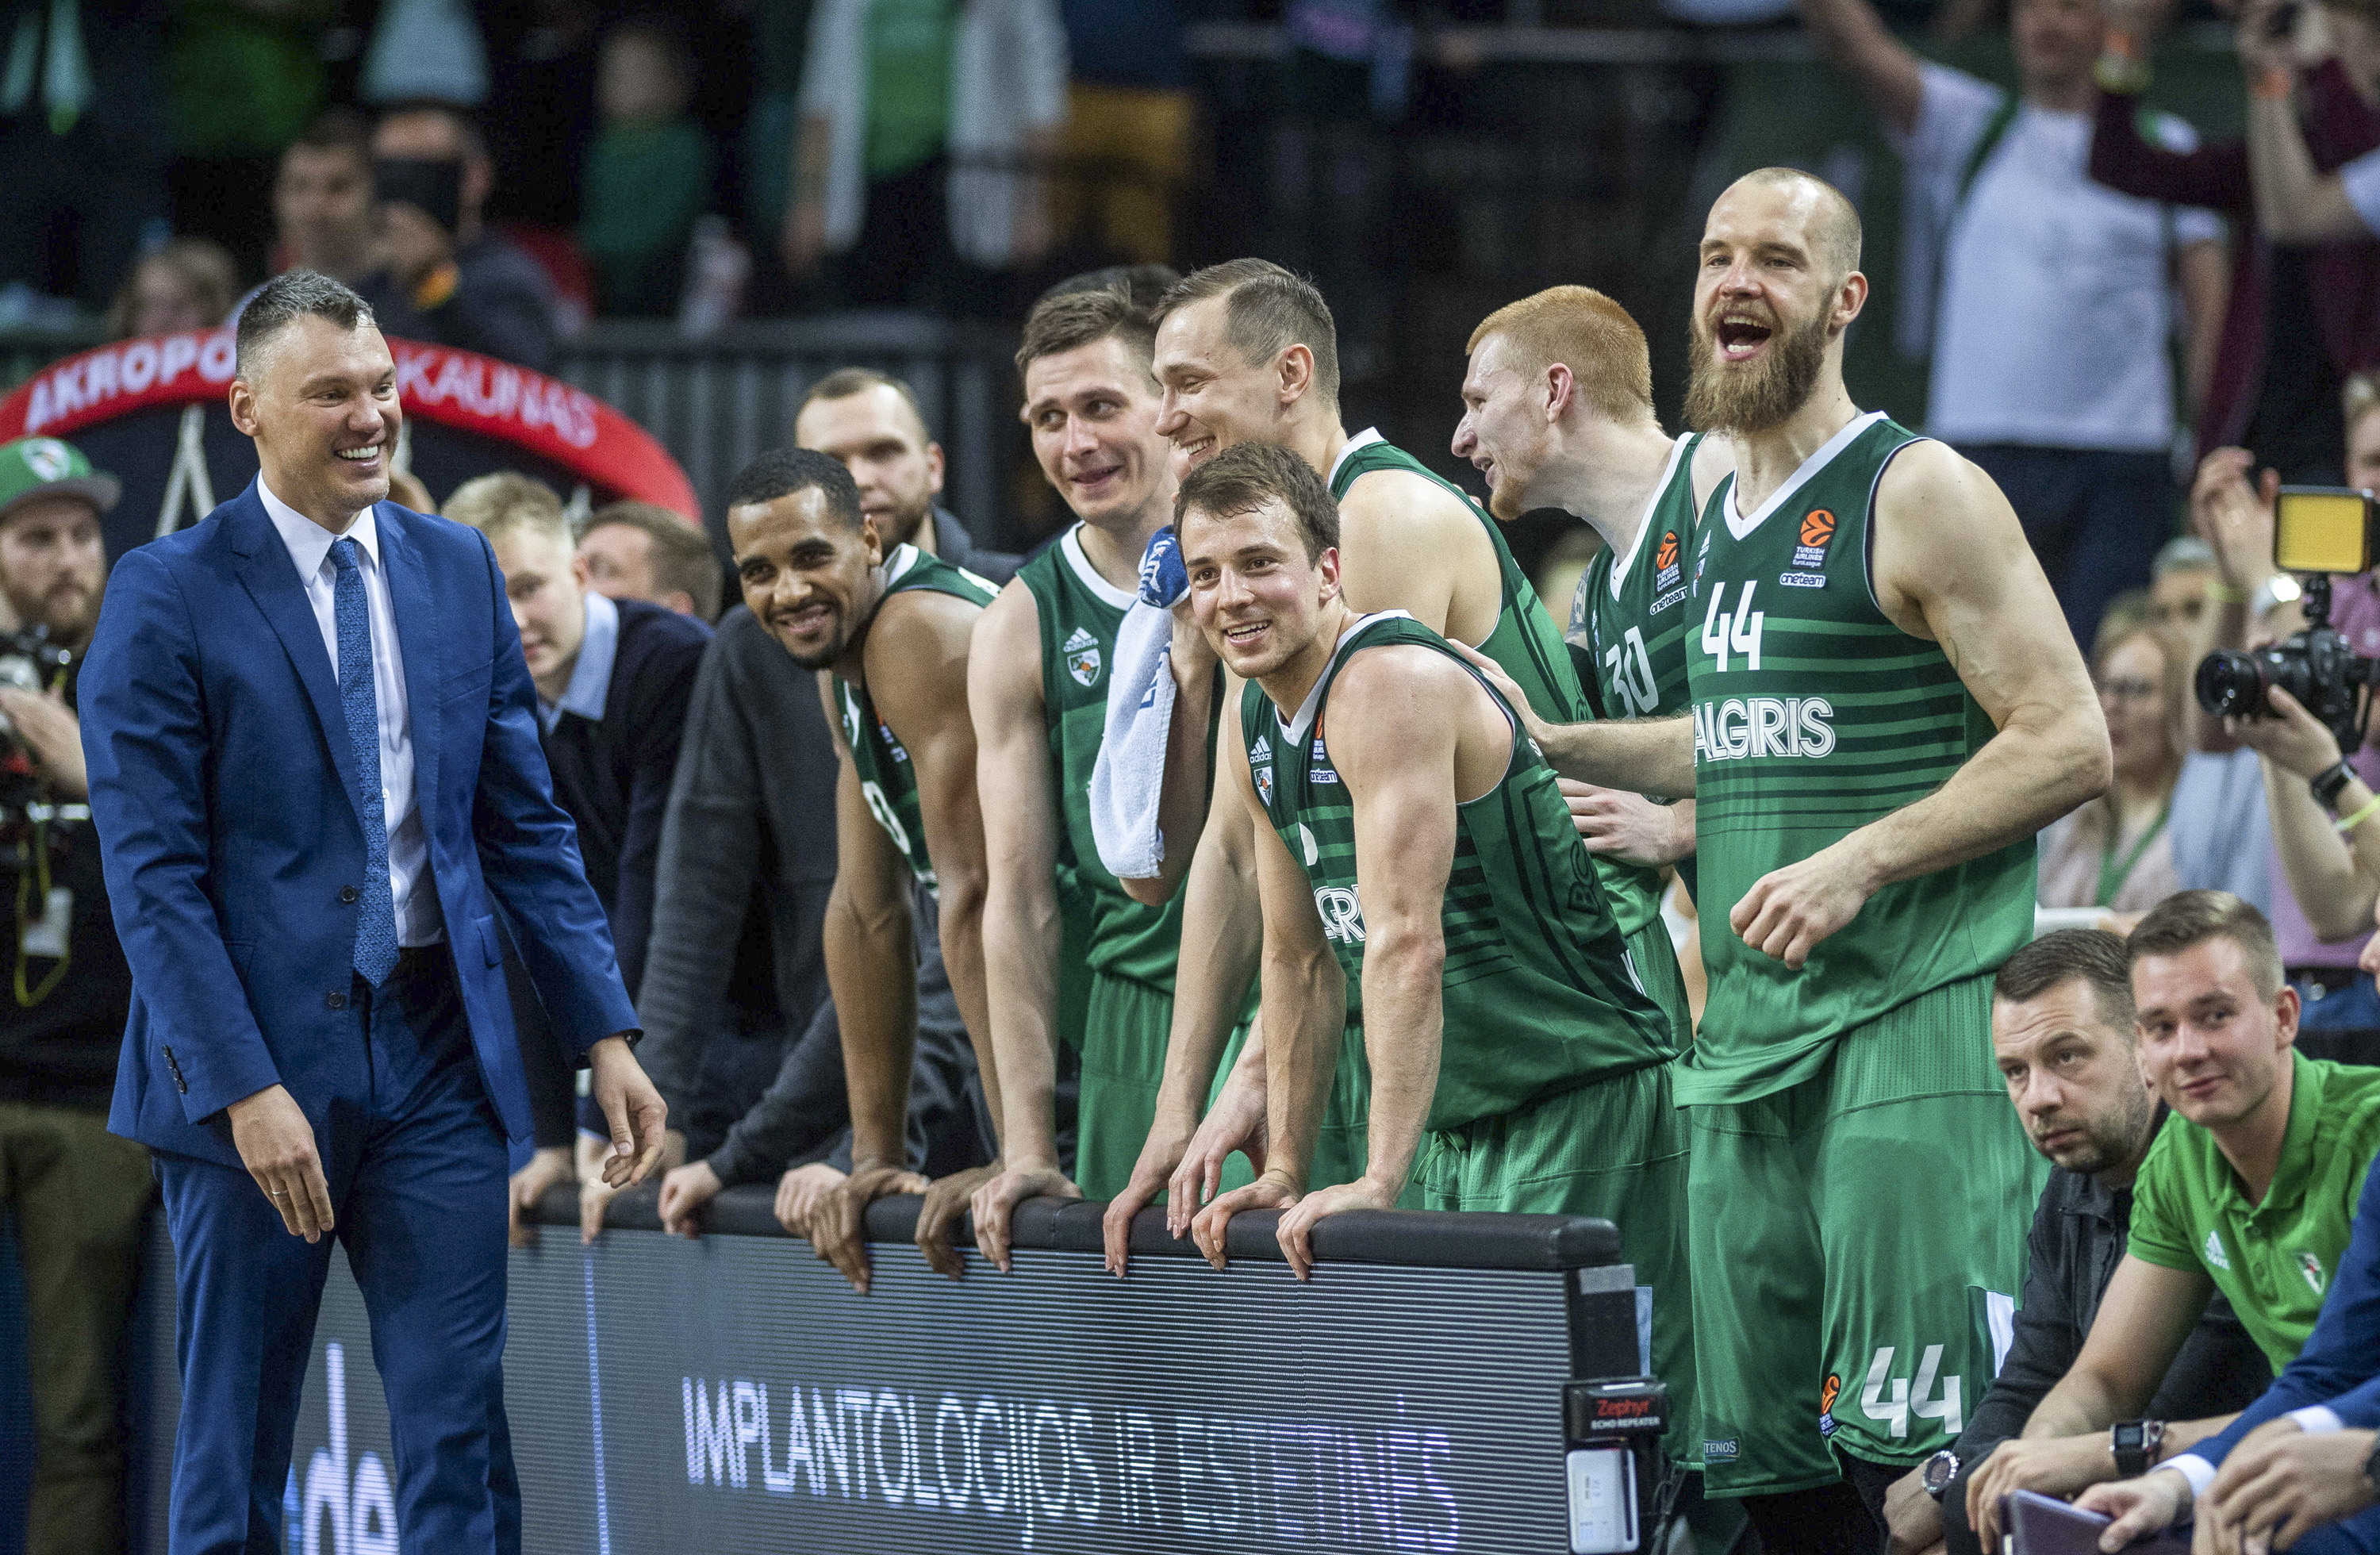 BEIJING, April 27, 2018  Players of Zalgiris Kaunas celebrates during the fourth playoff of the Euroleague between Zalgiris Kaunas from Lithuania and Olympiakos Piraeus from Greece in Kaunas, Lithuania, April 26, 2018. Zalgiris Kaunas won 101-91. (Credit Image: © Alfredas Pliadis/Xinhua via ZUMA Wire)